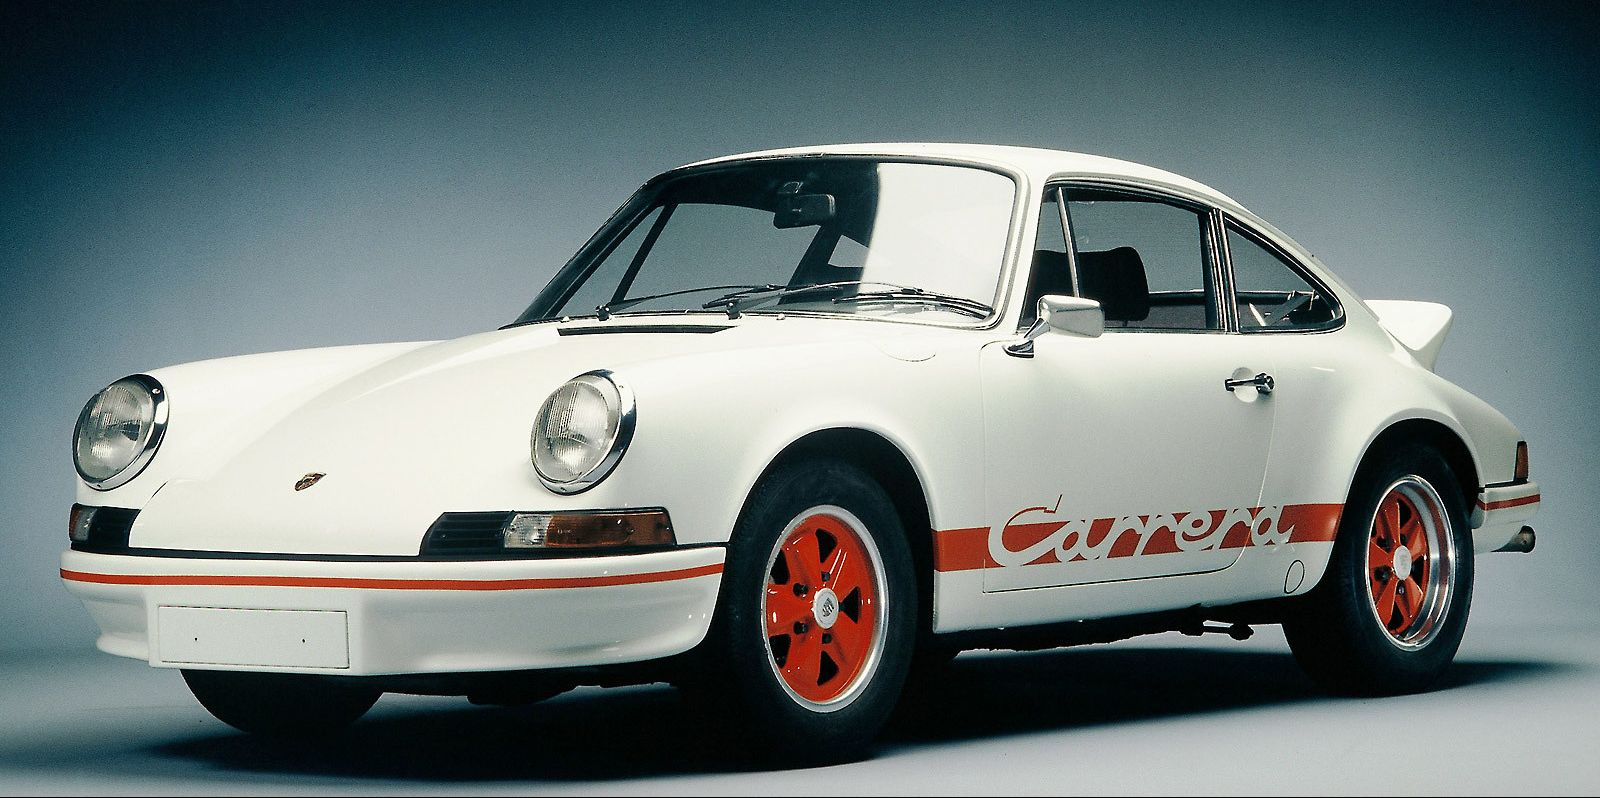 A Quick Run Through the History of the Porsche 911